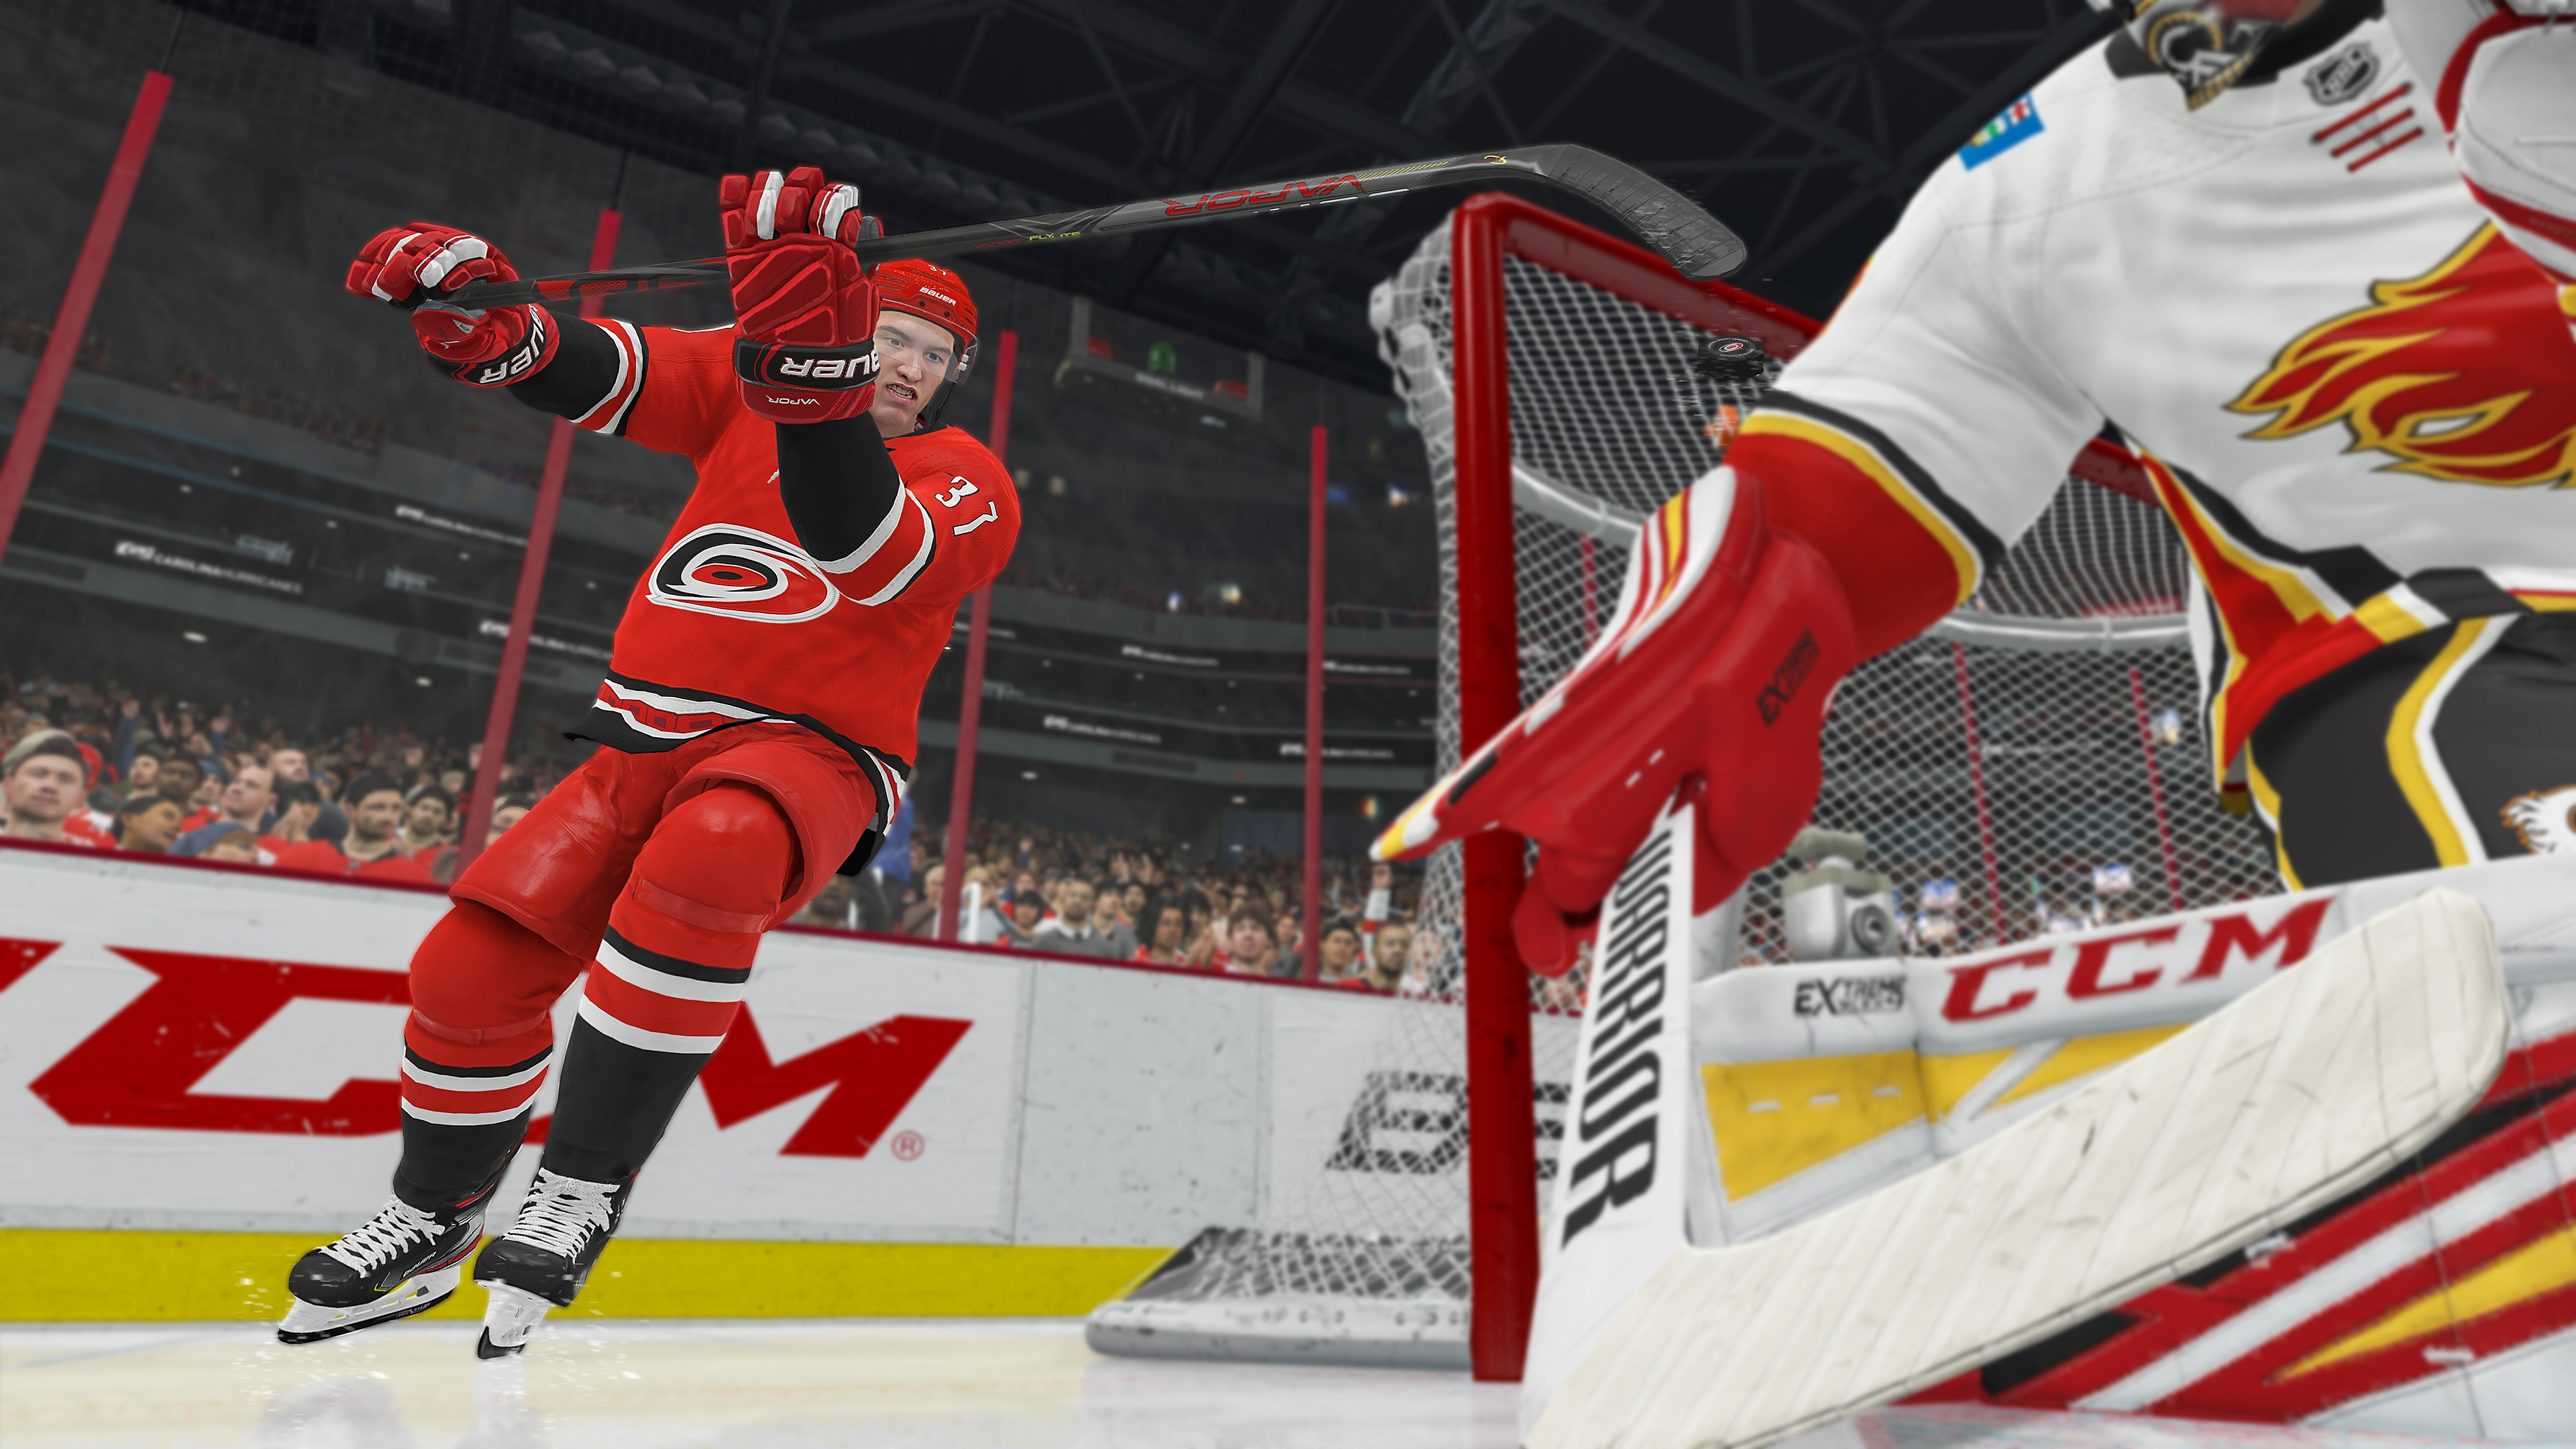 EA SPORTS NHL 21 - Captura de pantalla 1 de la galería